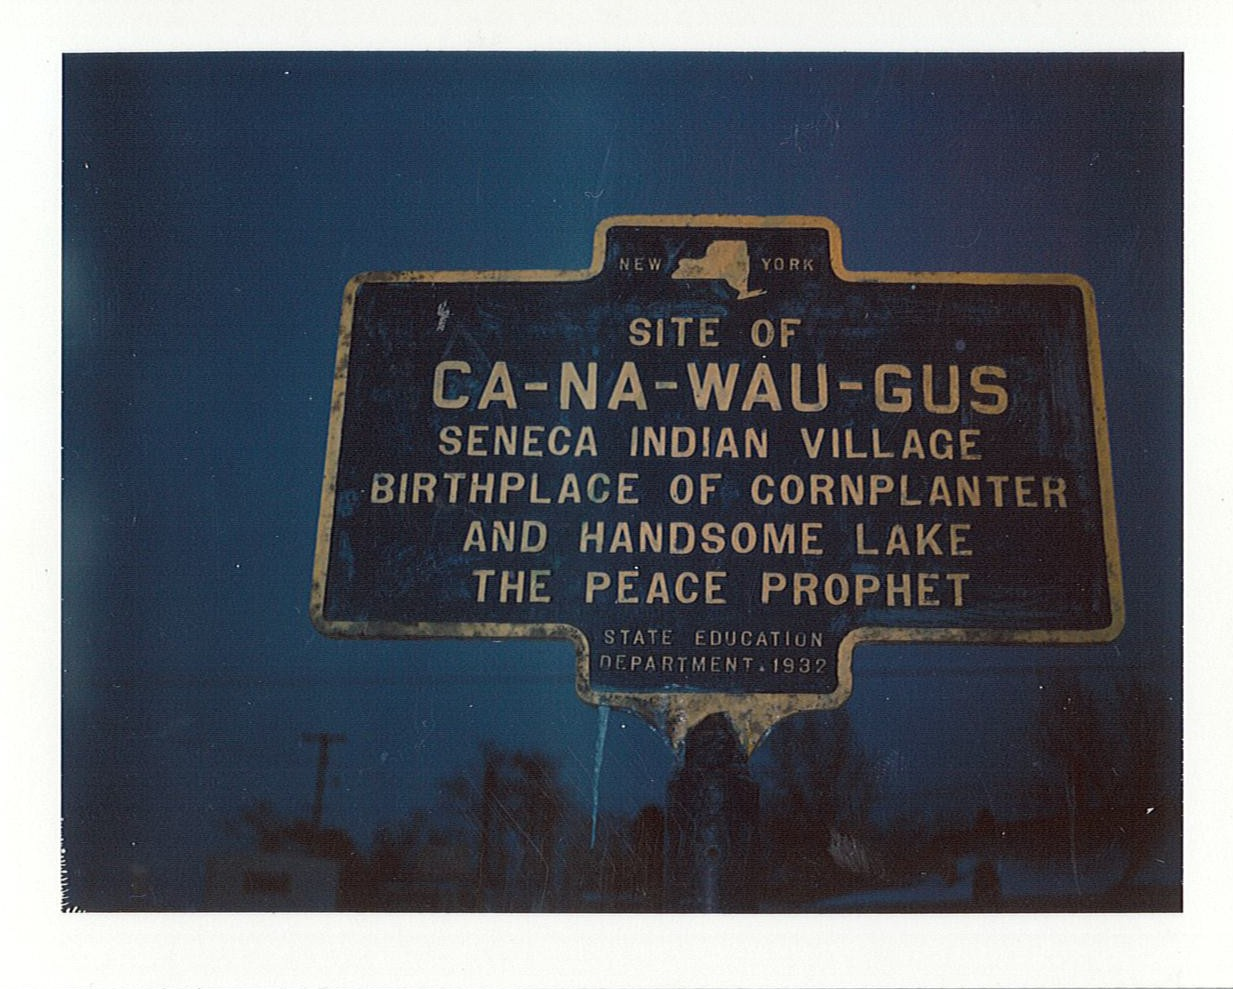 Image of blue and yellow historical marker for Ca-na-wau-gus